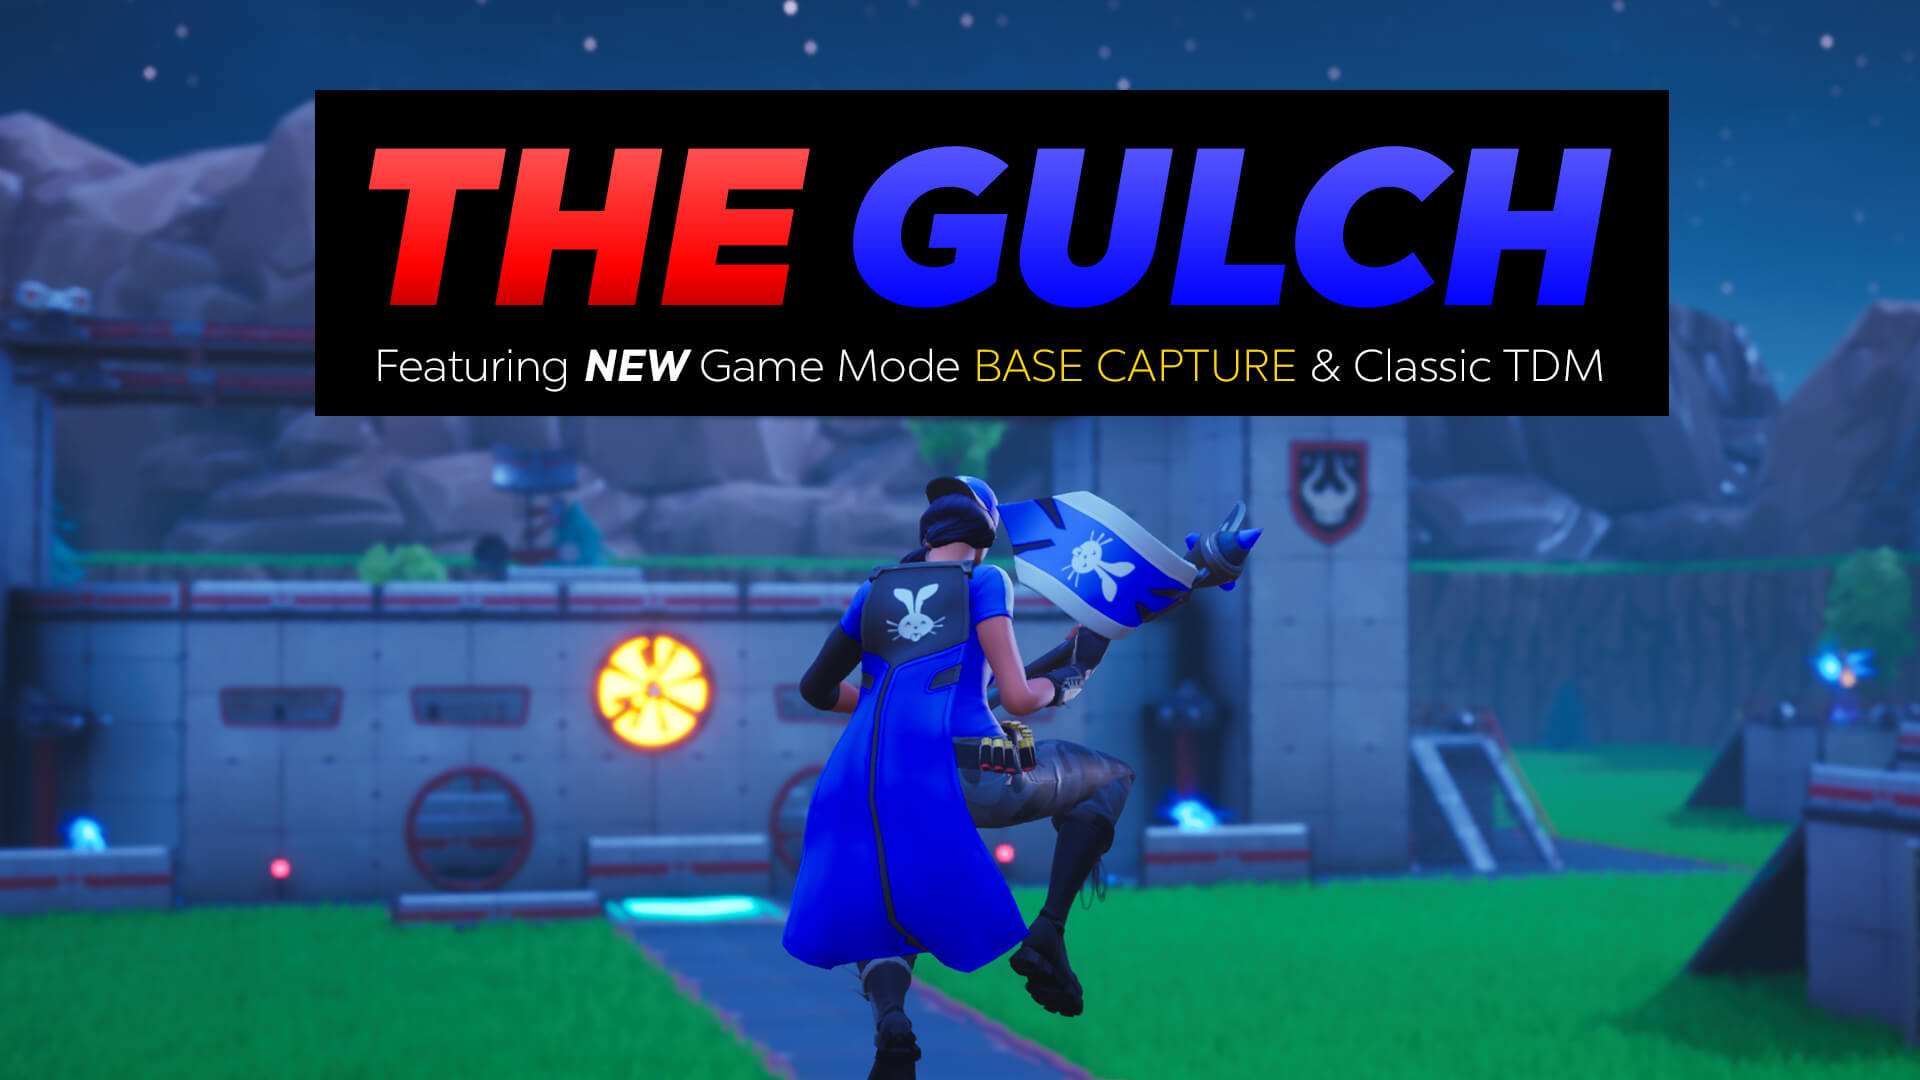 THE GULCH - BASE CAPTURE